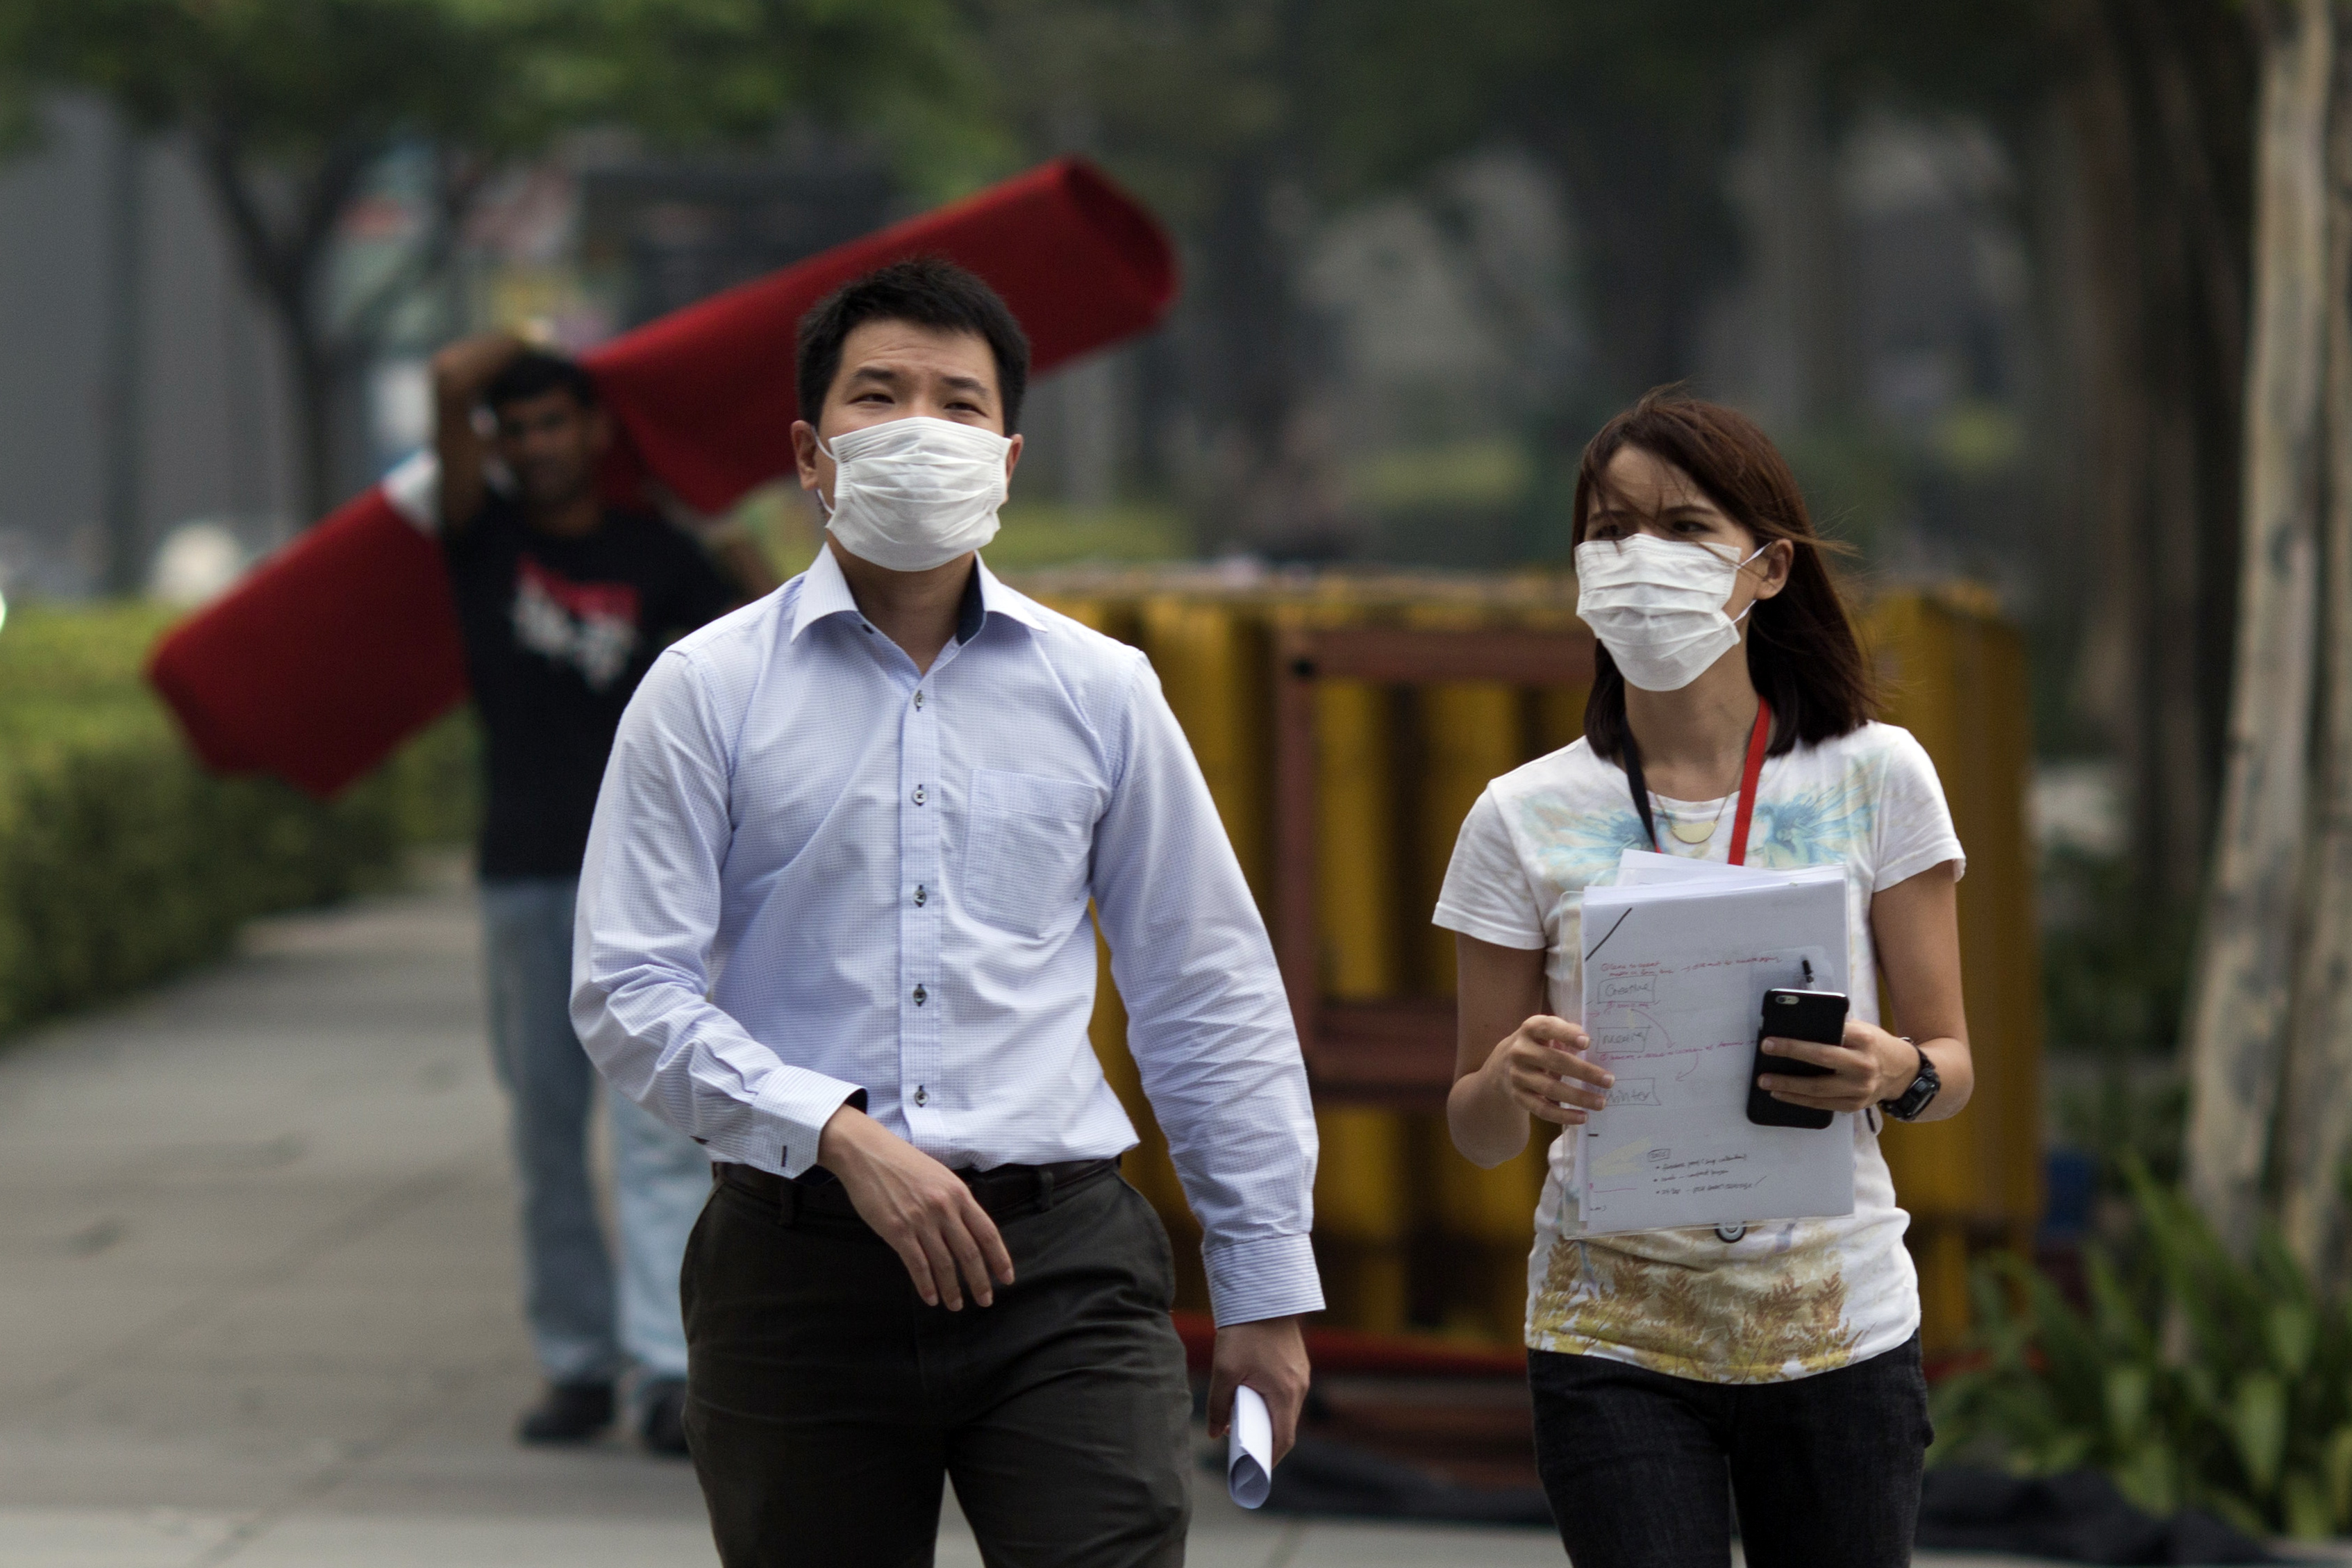 A man and woman wear masks as they work outdoors during a hazy day in Singapore on Sept. 10, 2015